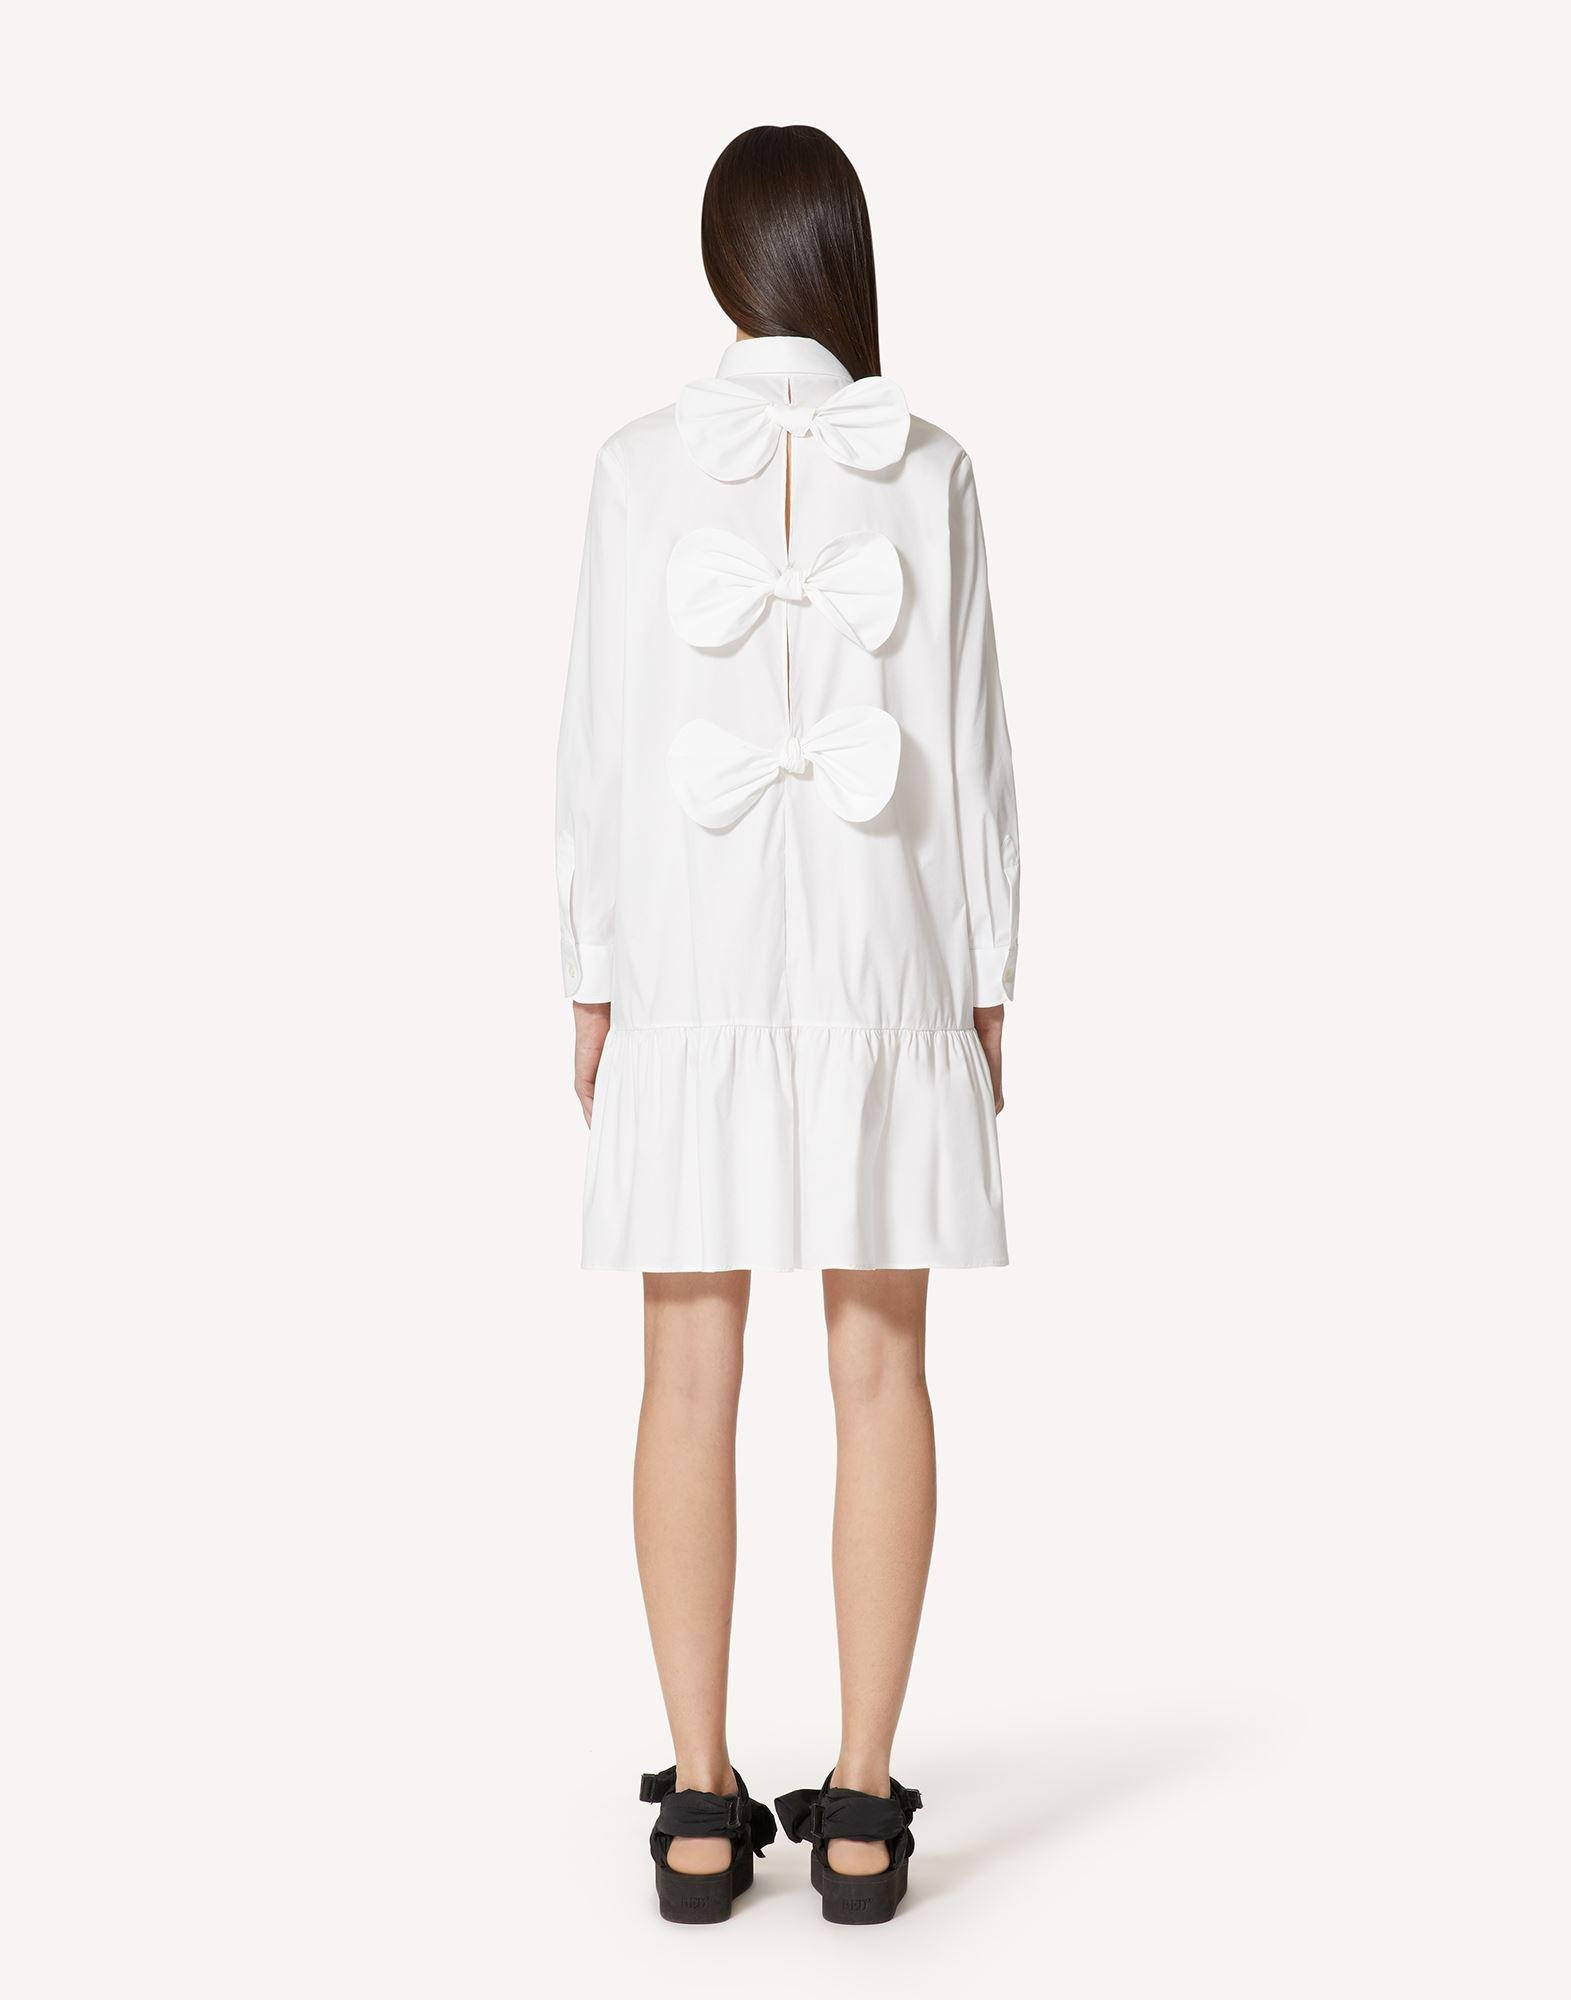 COTTON POPLIN DRESS WITH BOW DETAIL 1